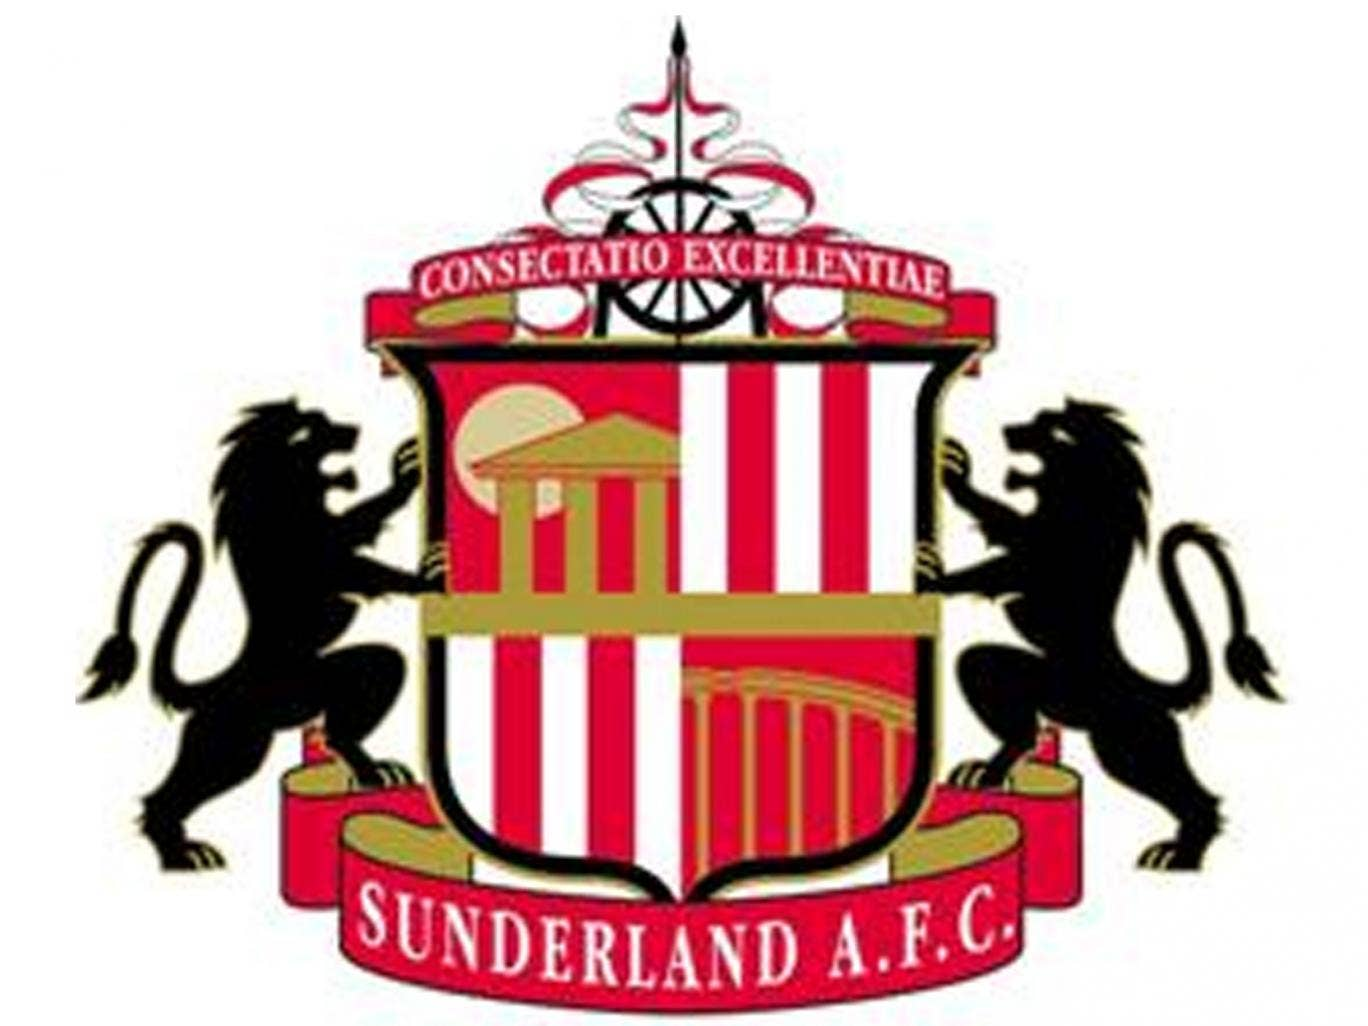 christian singles in sunderland Get the latest single and return tickets information for sunderland at stagecoach online today.